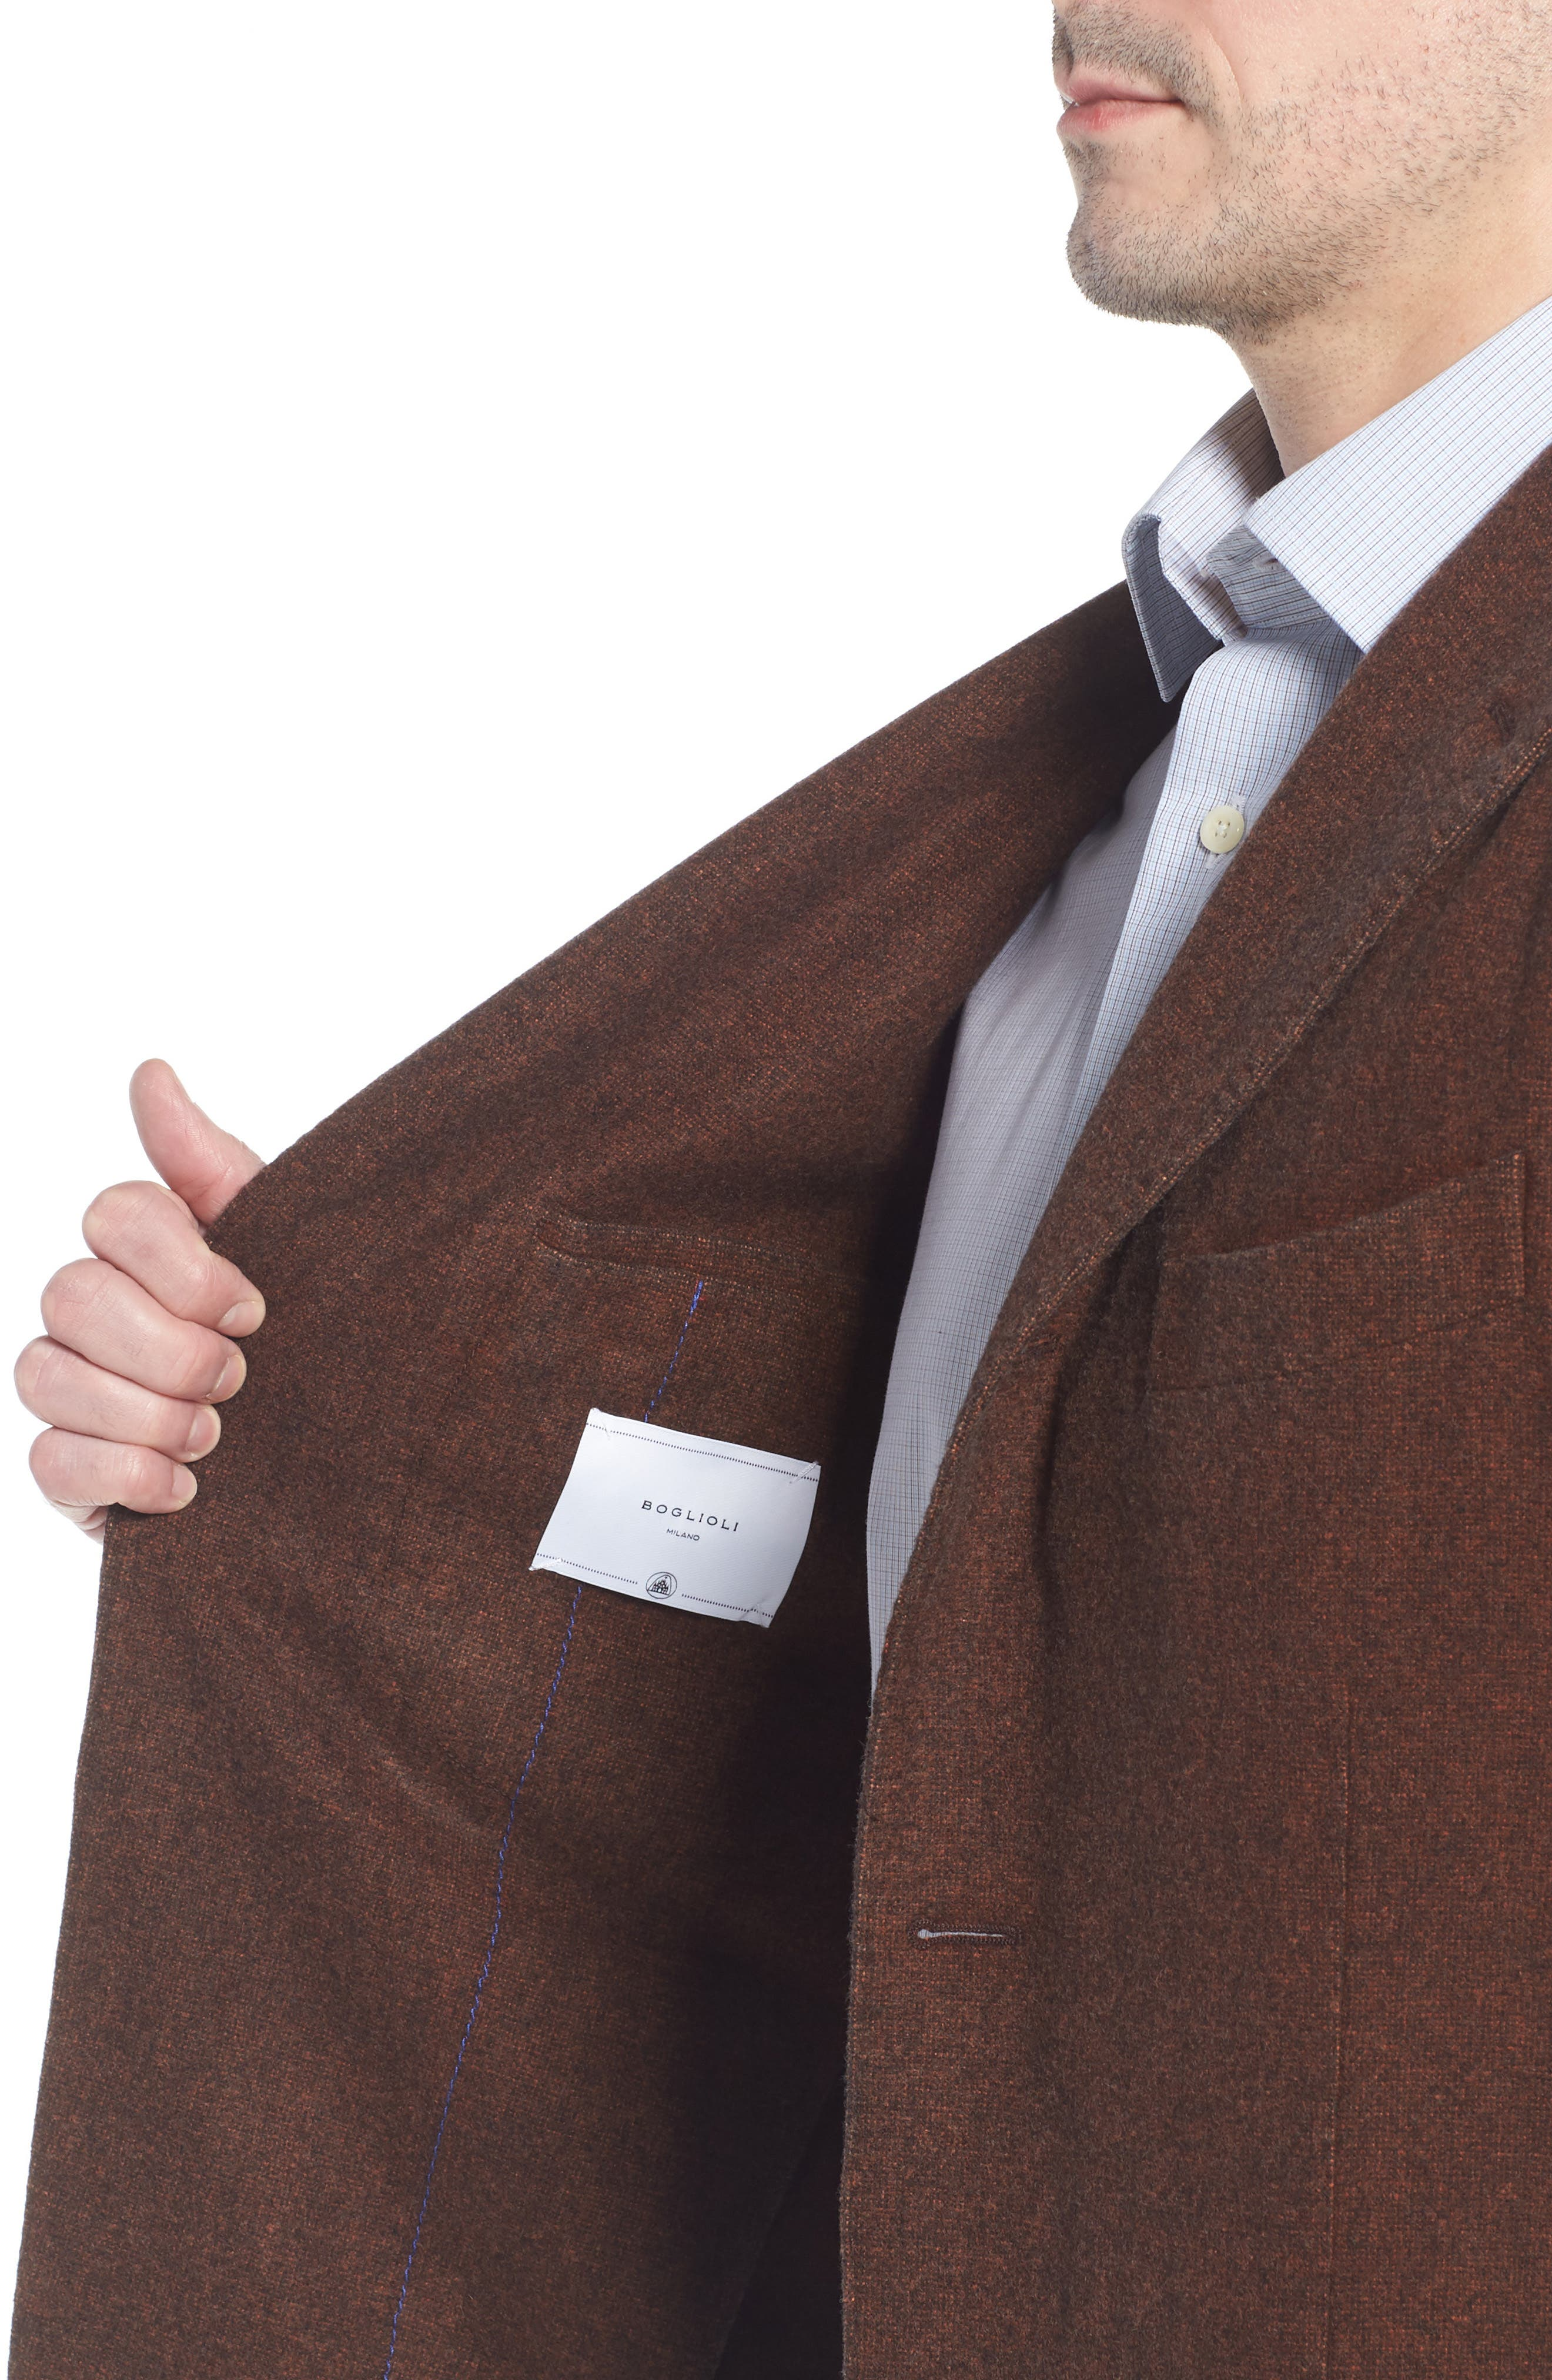 Trim Fit Wool Blazer,                             Alternate thumbnail 4, color,